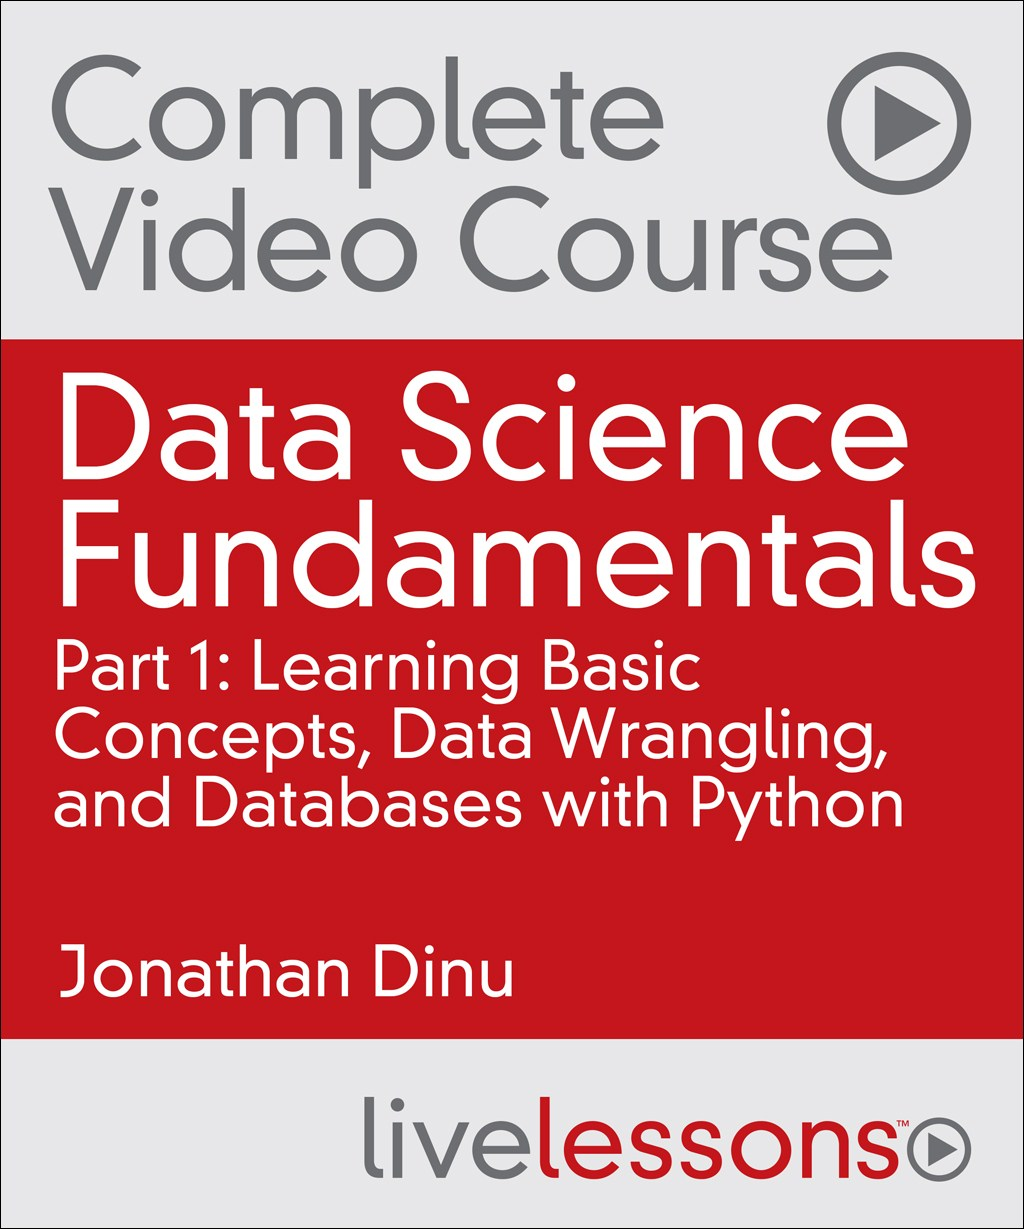 Data Science Fundamentals Part 1, Complete Video Course: Learning Basic Concepts, Data Wrangling, and Databases with Python